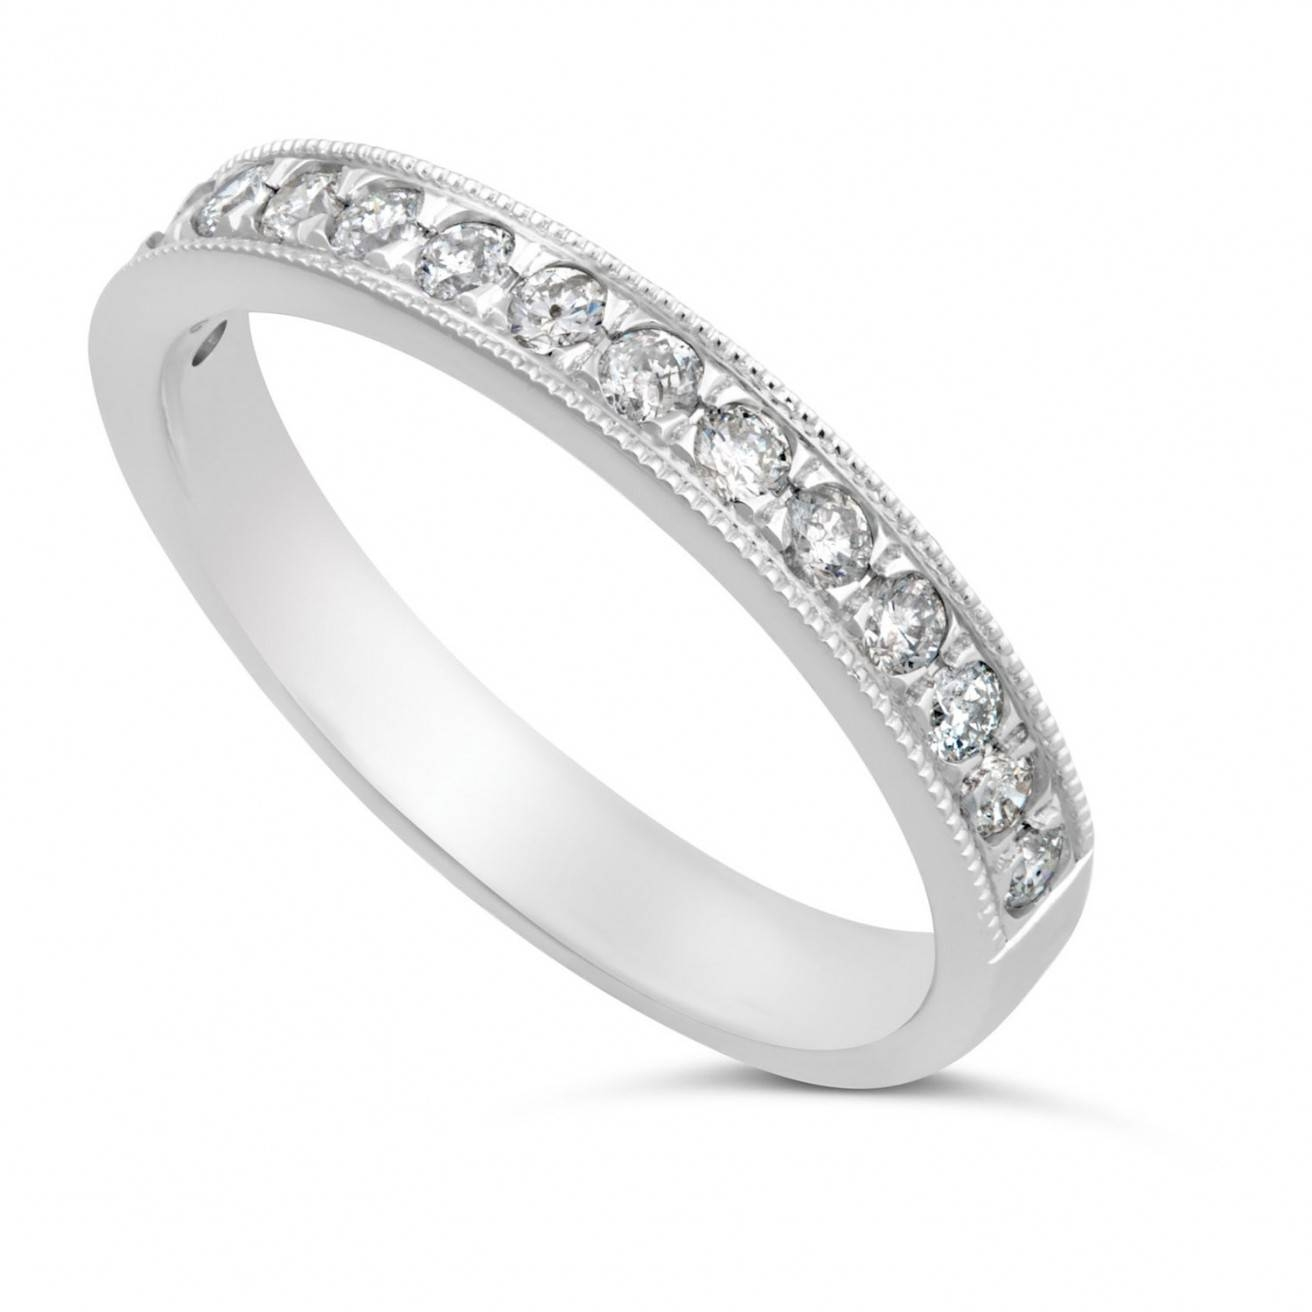 Buy White Gold Wedding Rings Online – Fraser Hart Pertaining To Ladies White Gold Diamond Wedding Bands (View 11 of 15)